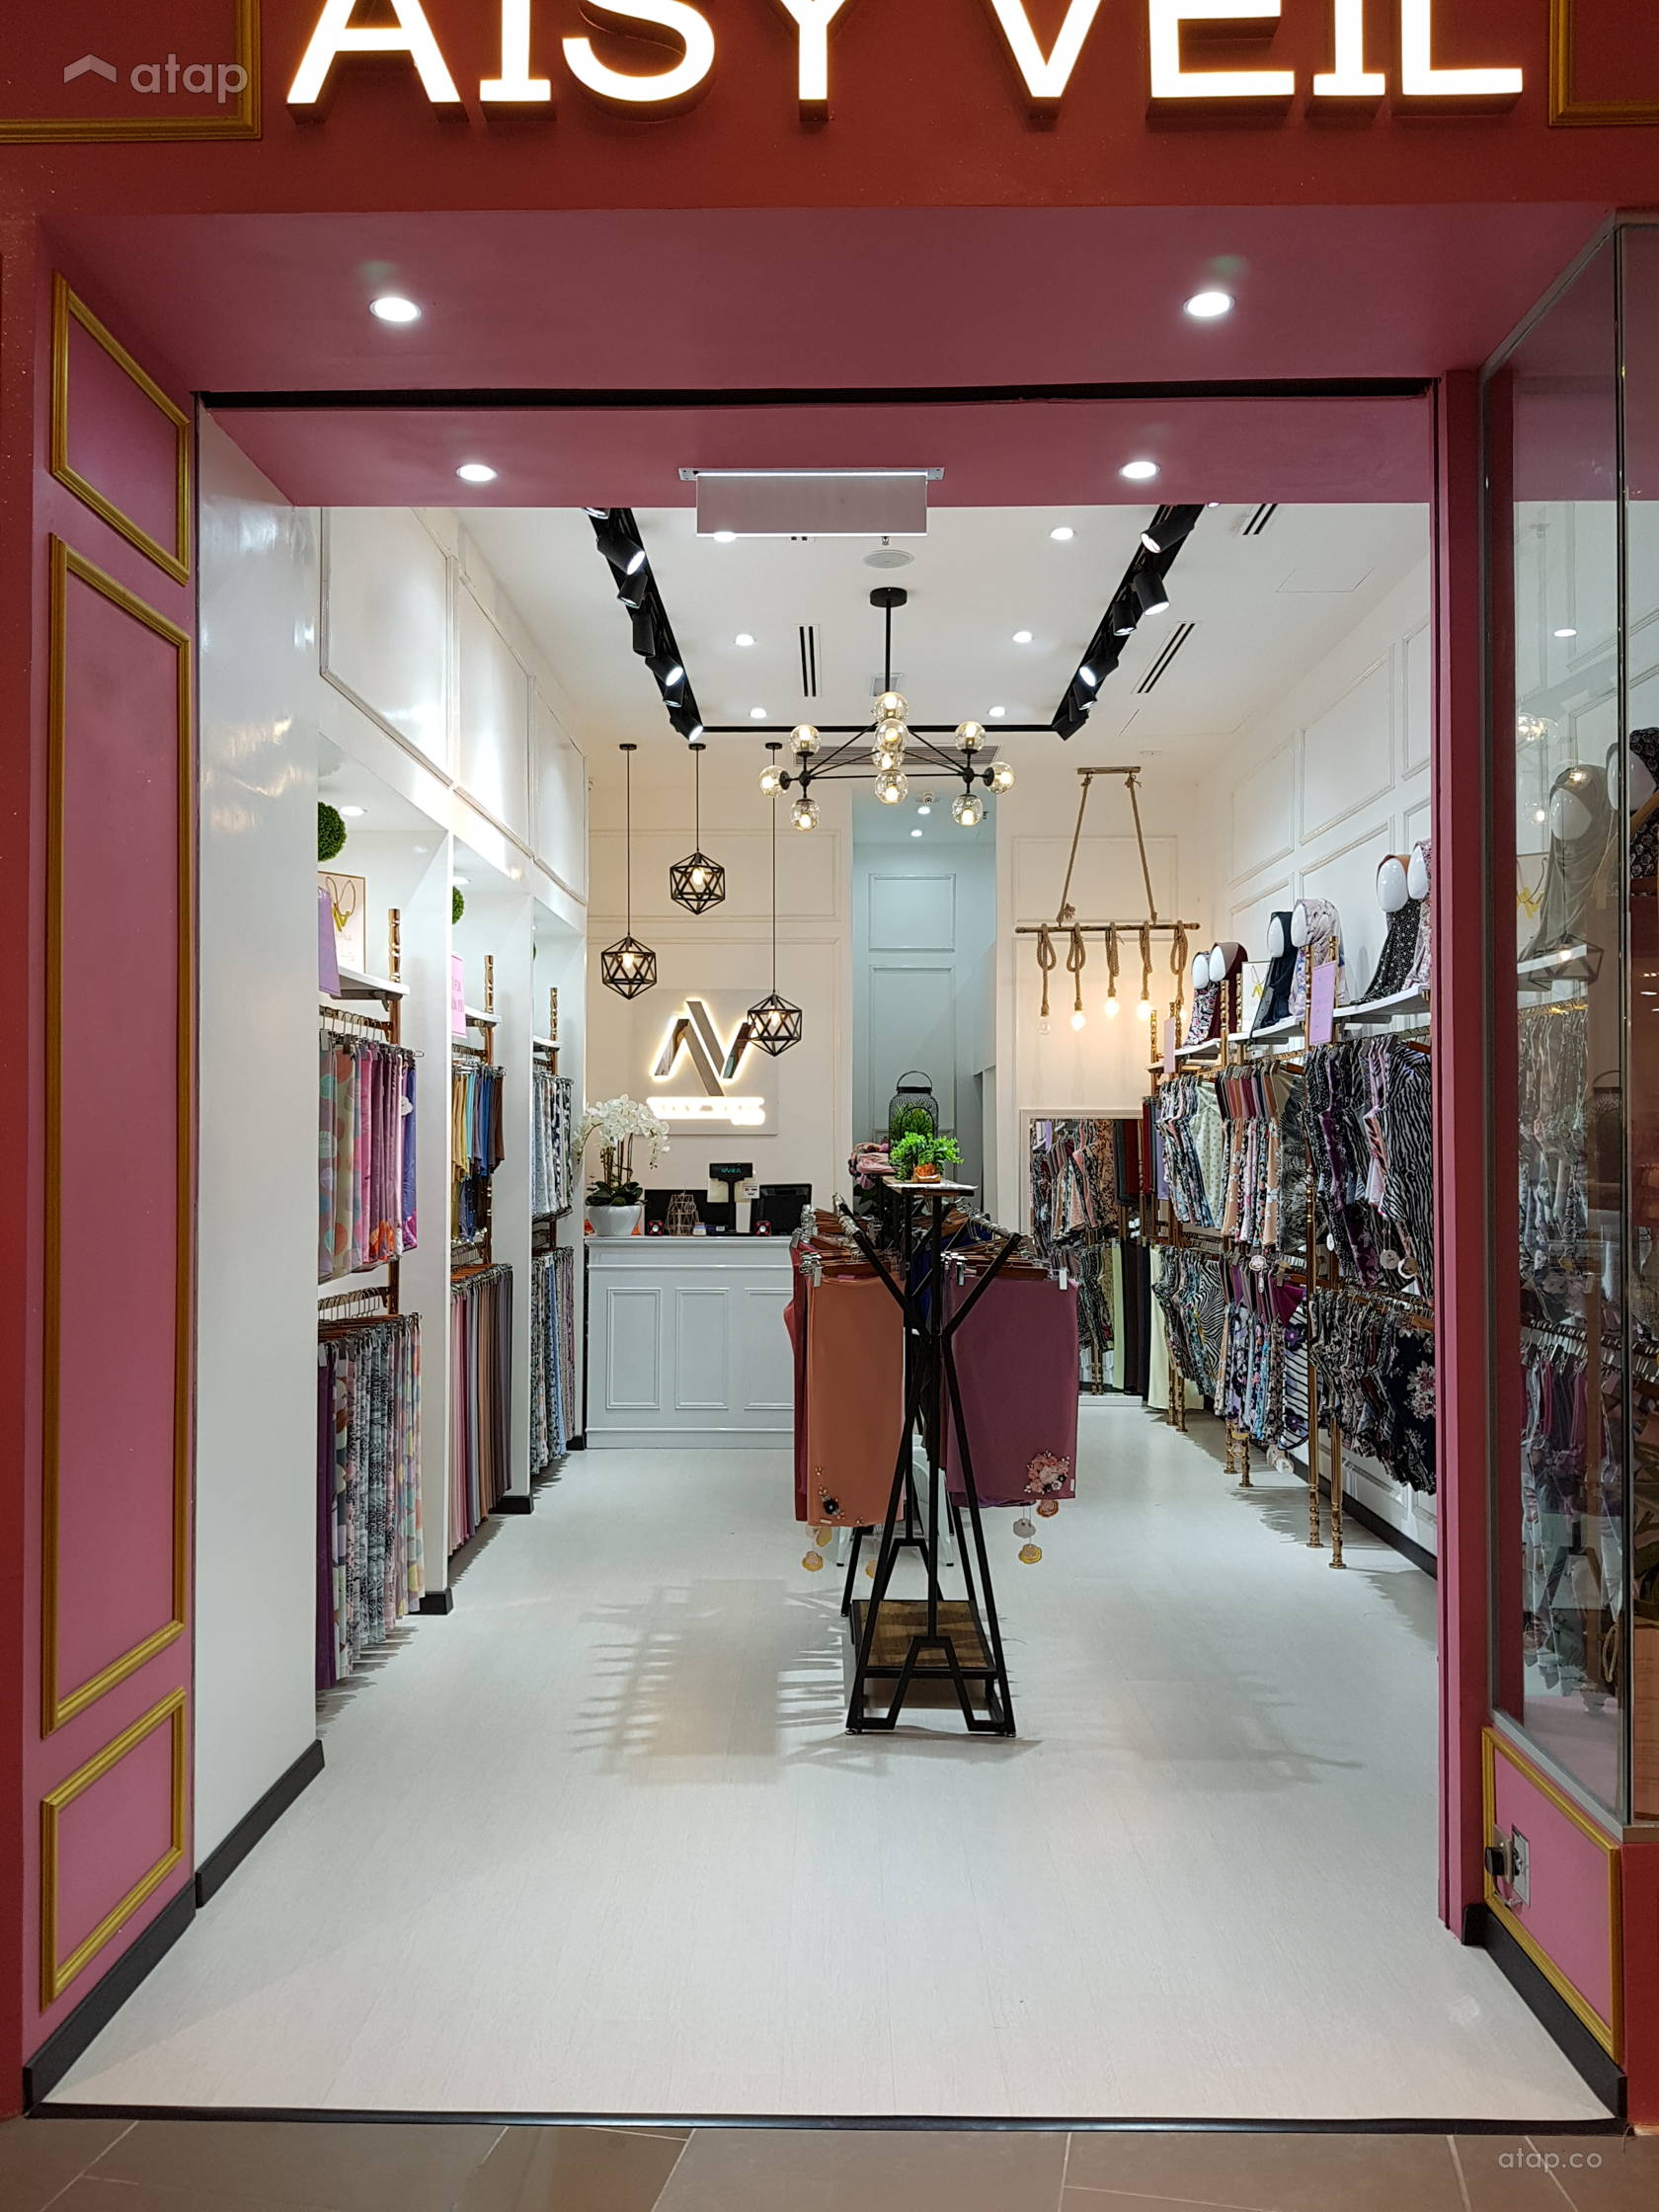 Aisy Veil Boutique Interior Design Renovation Ideas Photos And Price In Malaysia Atap Co